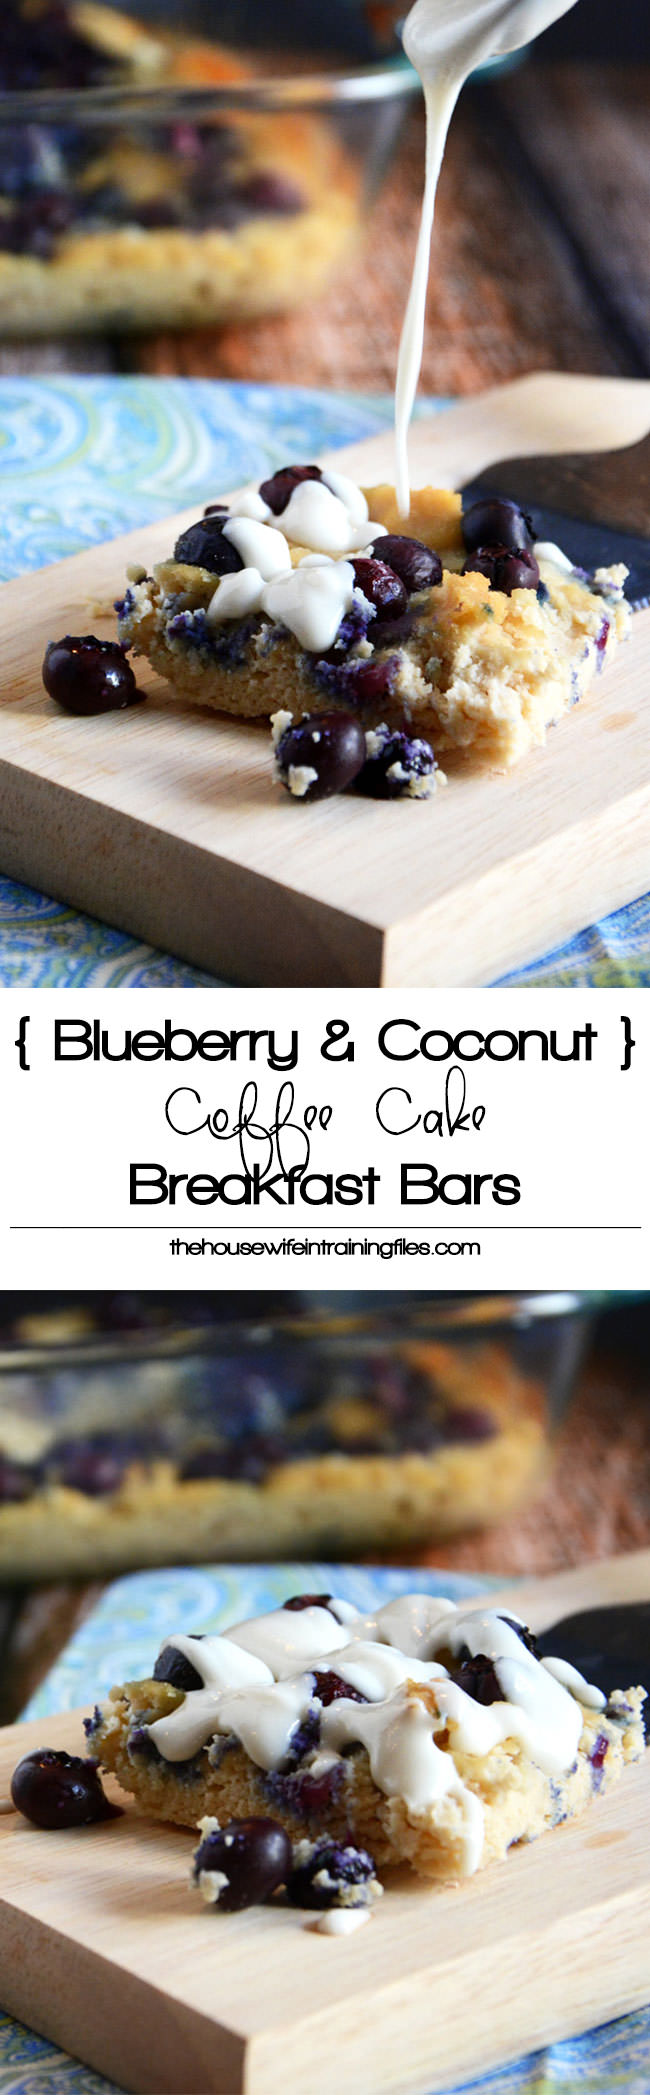 Juicy blueberries and creamy coconut butter make these soft coconut coffee cake bars so delicious! #paleo #glutenfree #healthy #breakfastbars